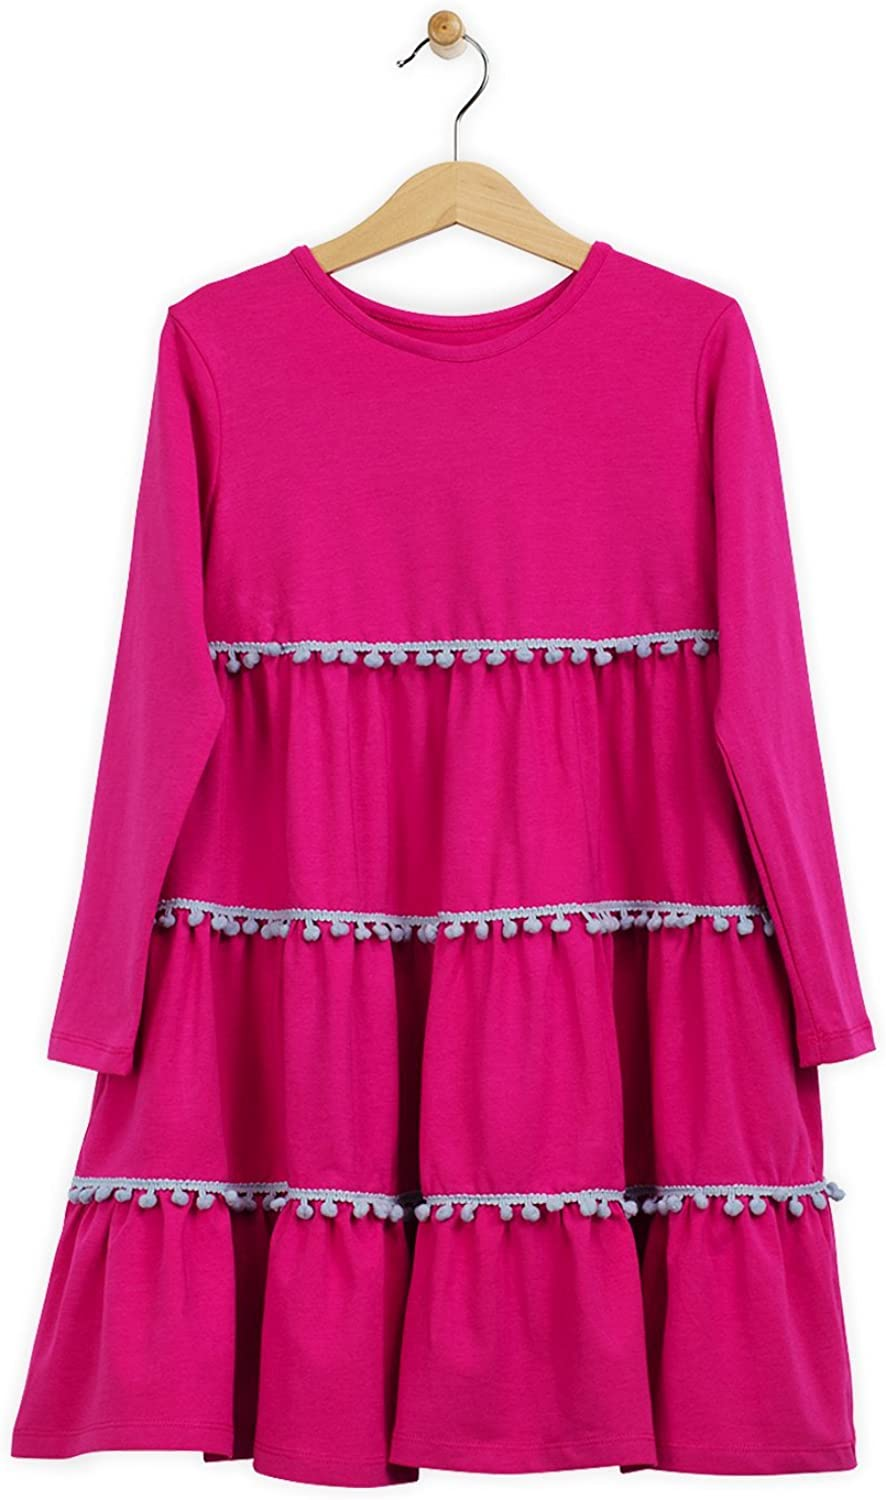 Lucky & Me | Emilia Girls Long Sleeve Dress | Children's Twirl Pop-Pom Trim Tiered Skirt